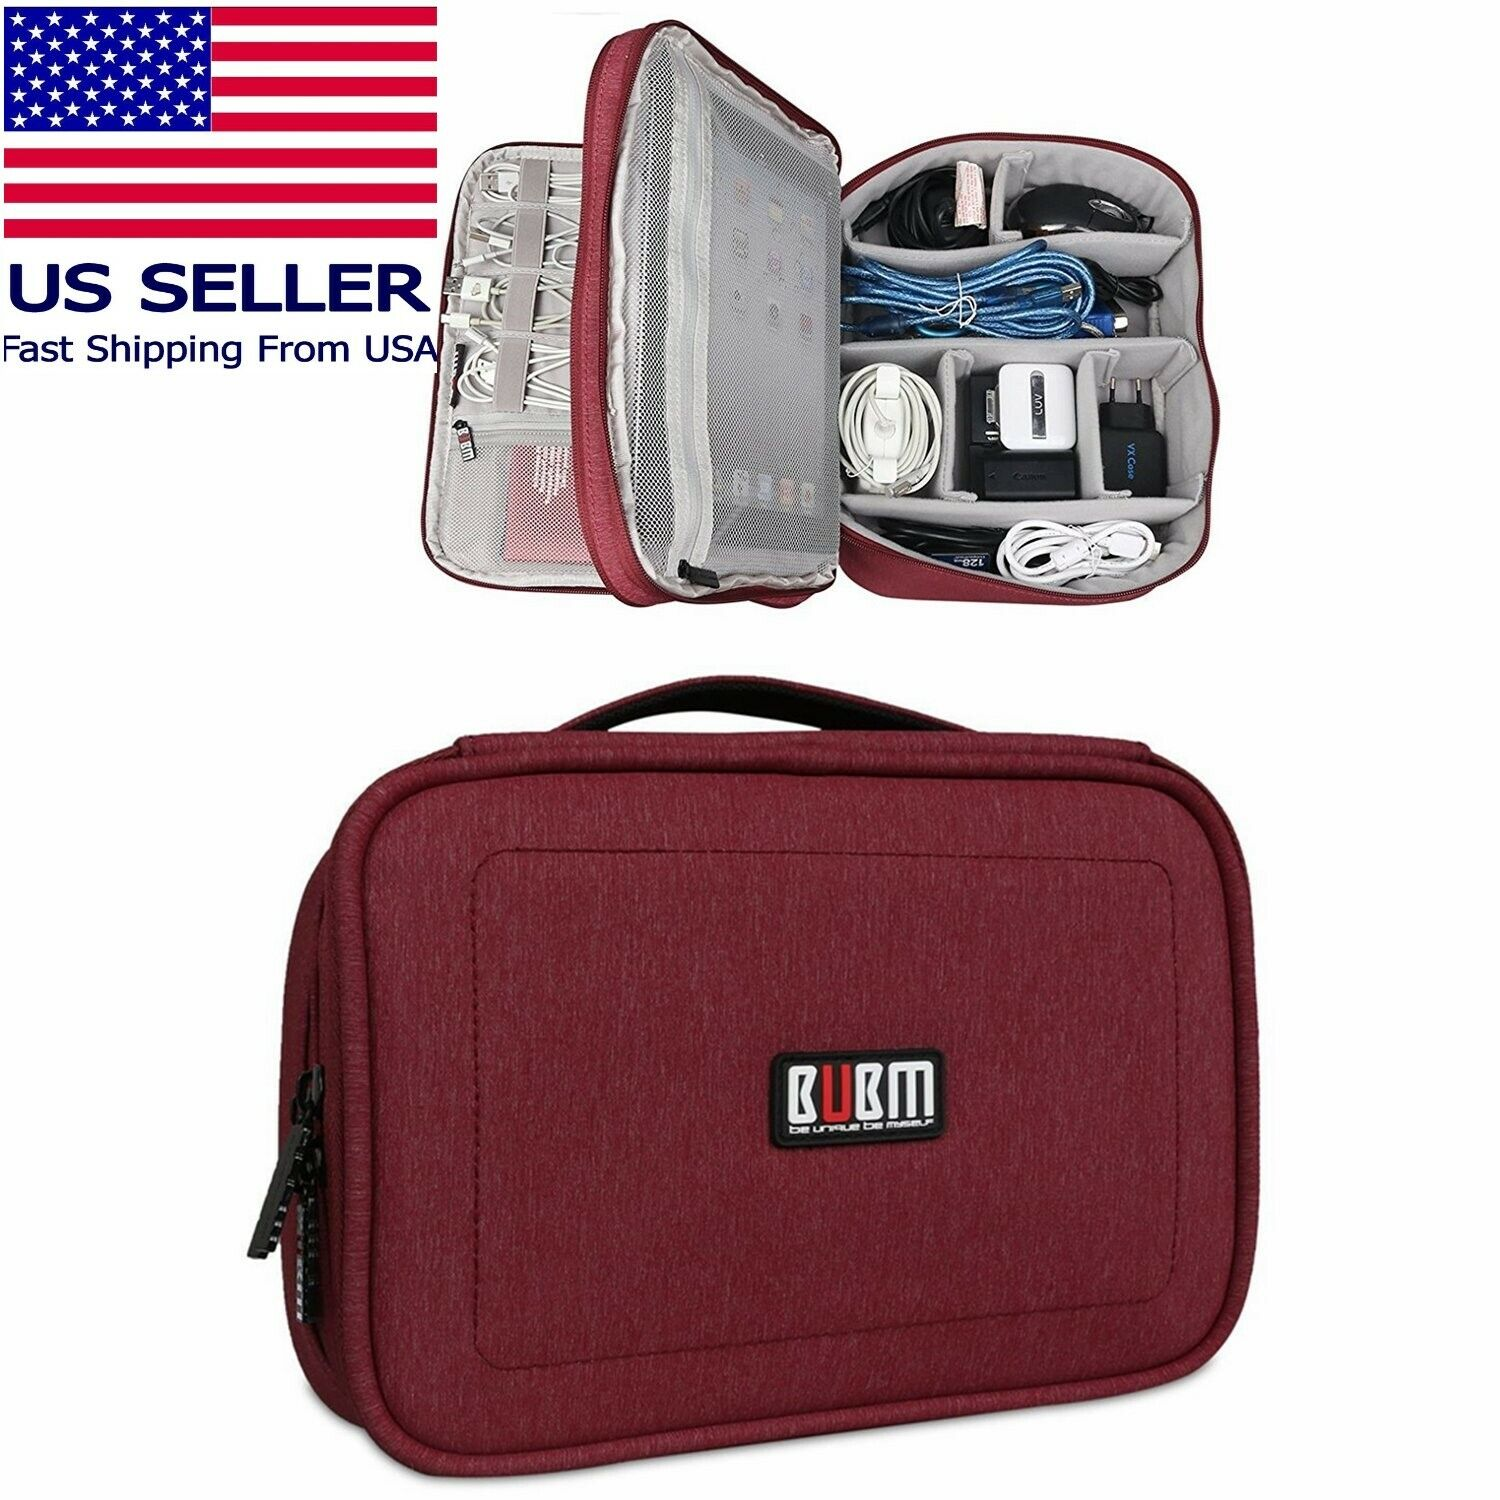 BUBM Portable Electronics Organizer, Double Layered Carry Case Red 10″ for Ipad Other Travel Accessories